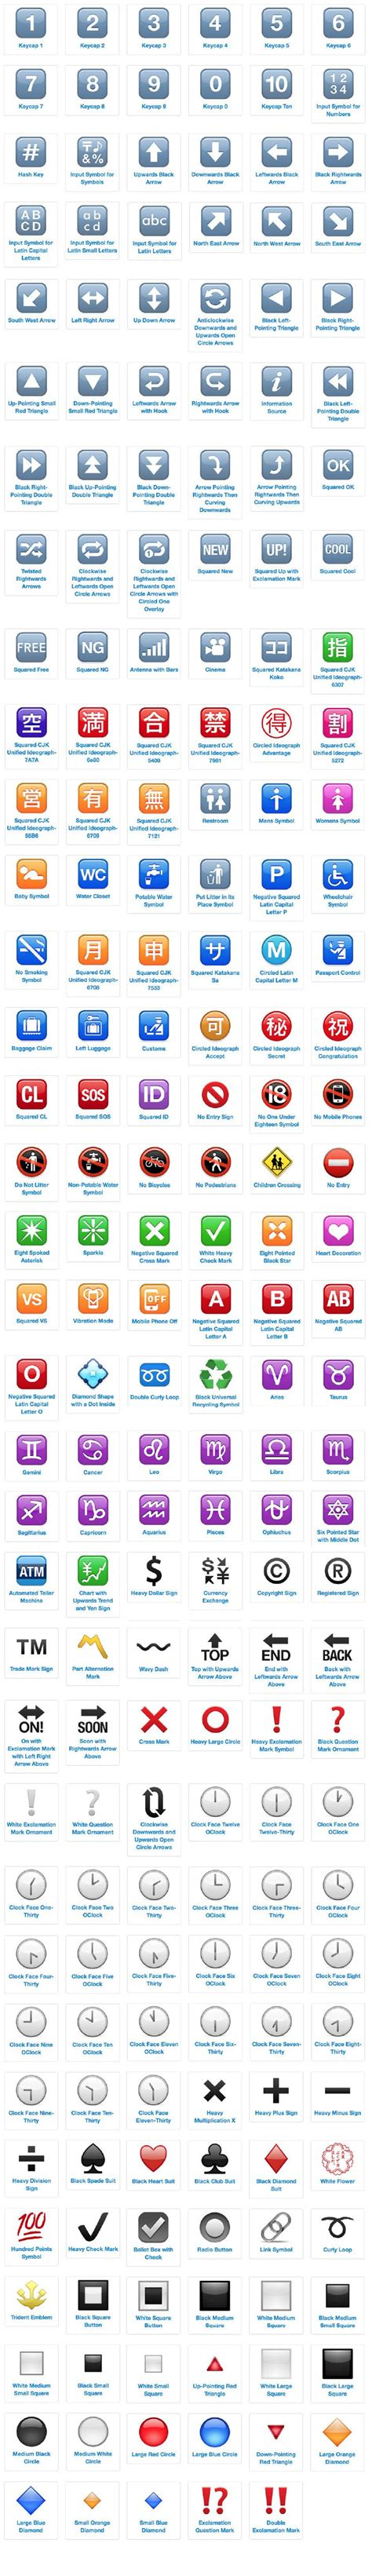 emoji list best 25 emoji quiz ideas on pinterest emoji 2 answer